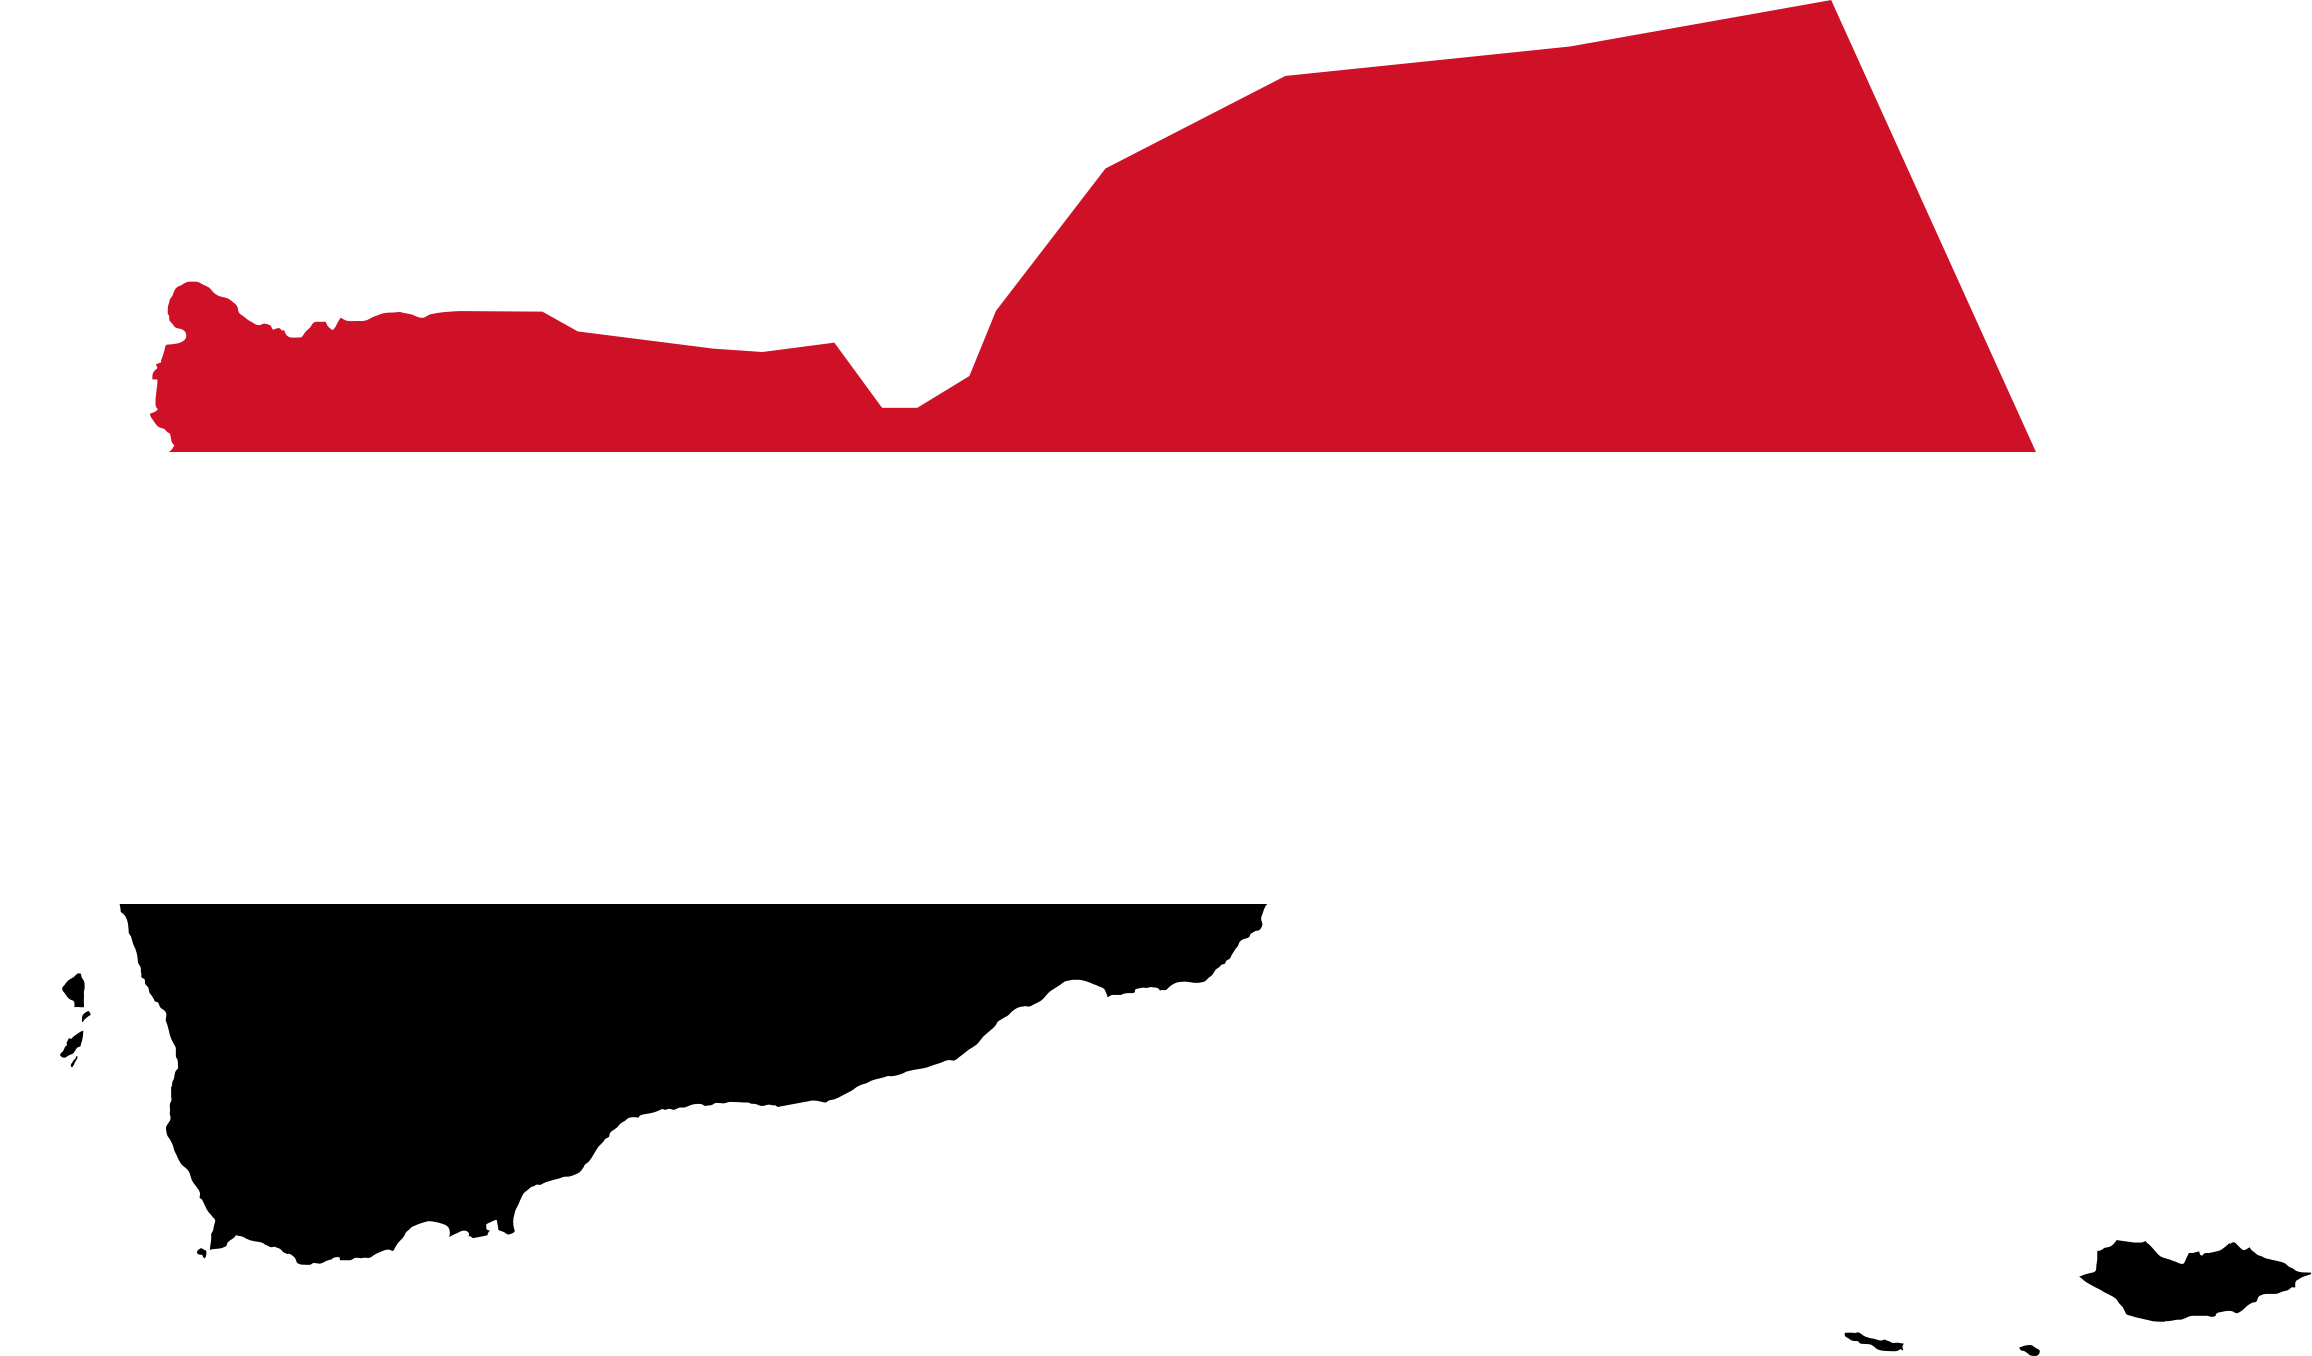 Yemen Map Flag by GDJ